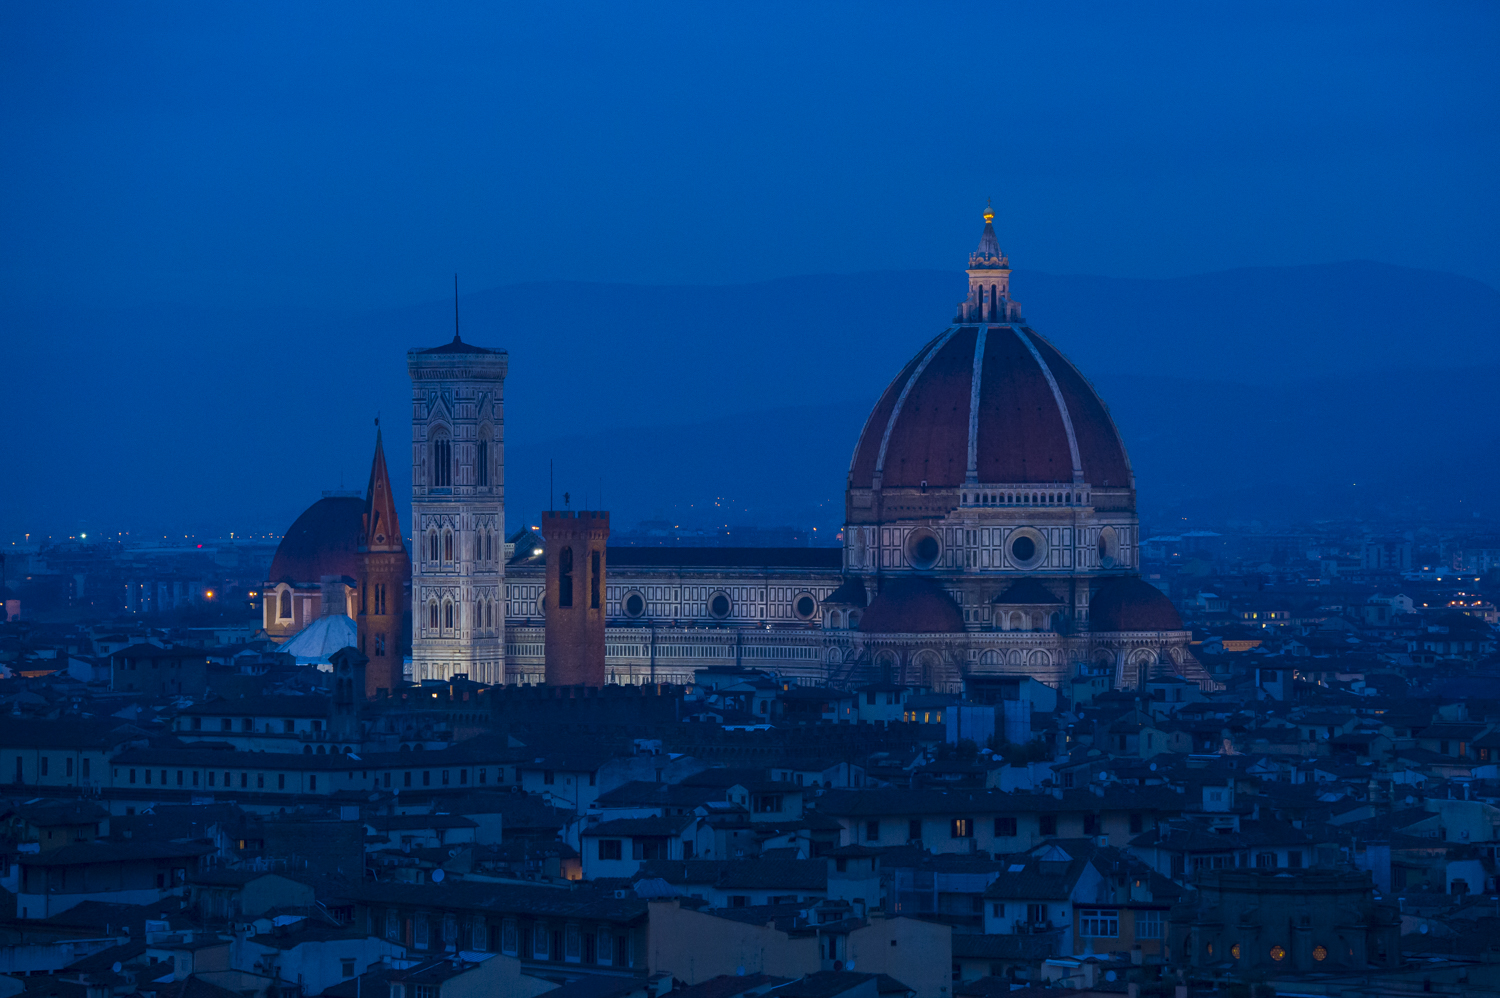 The Duomo, Florence,Italy. Hannibal, Season 3